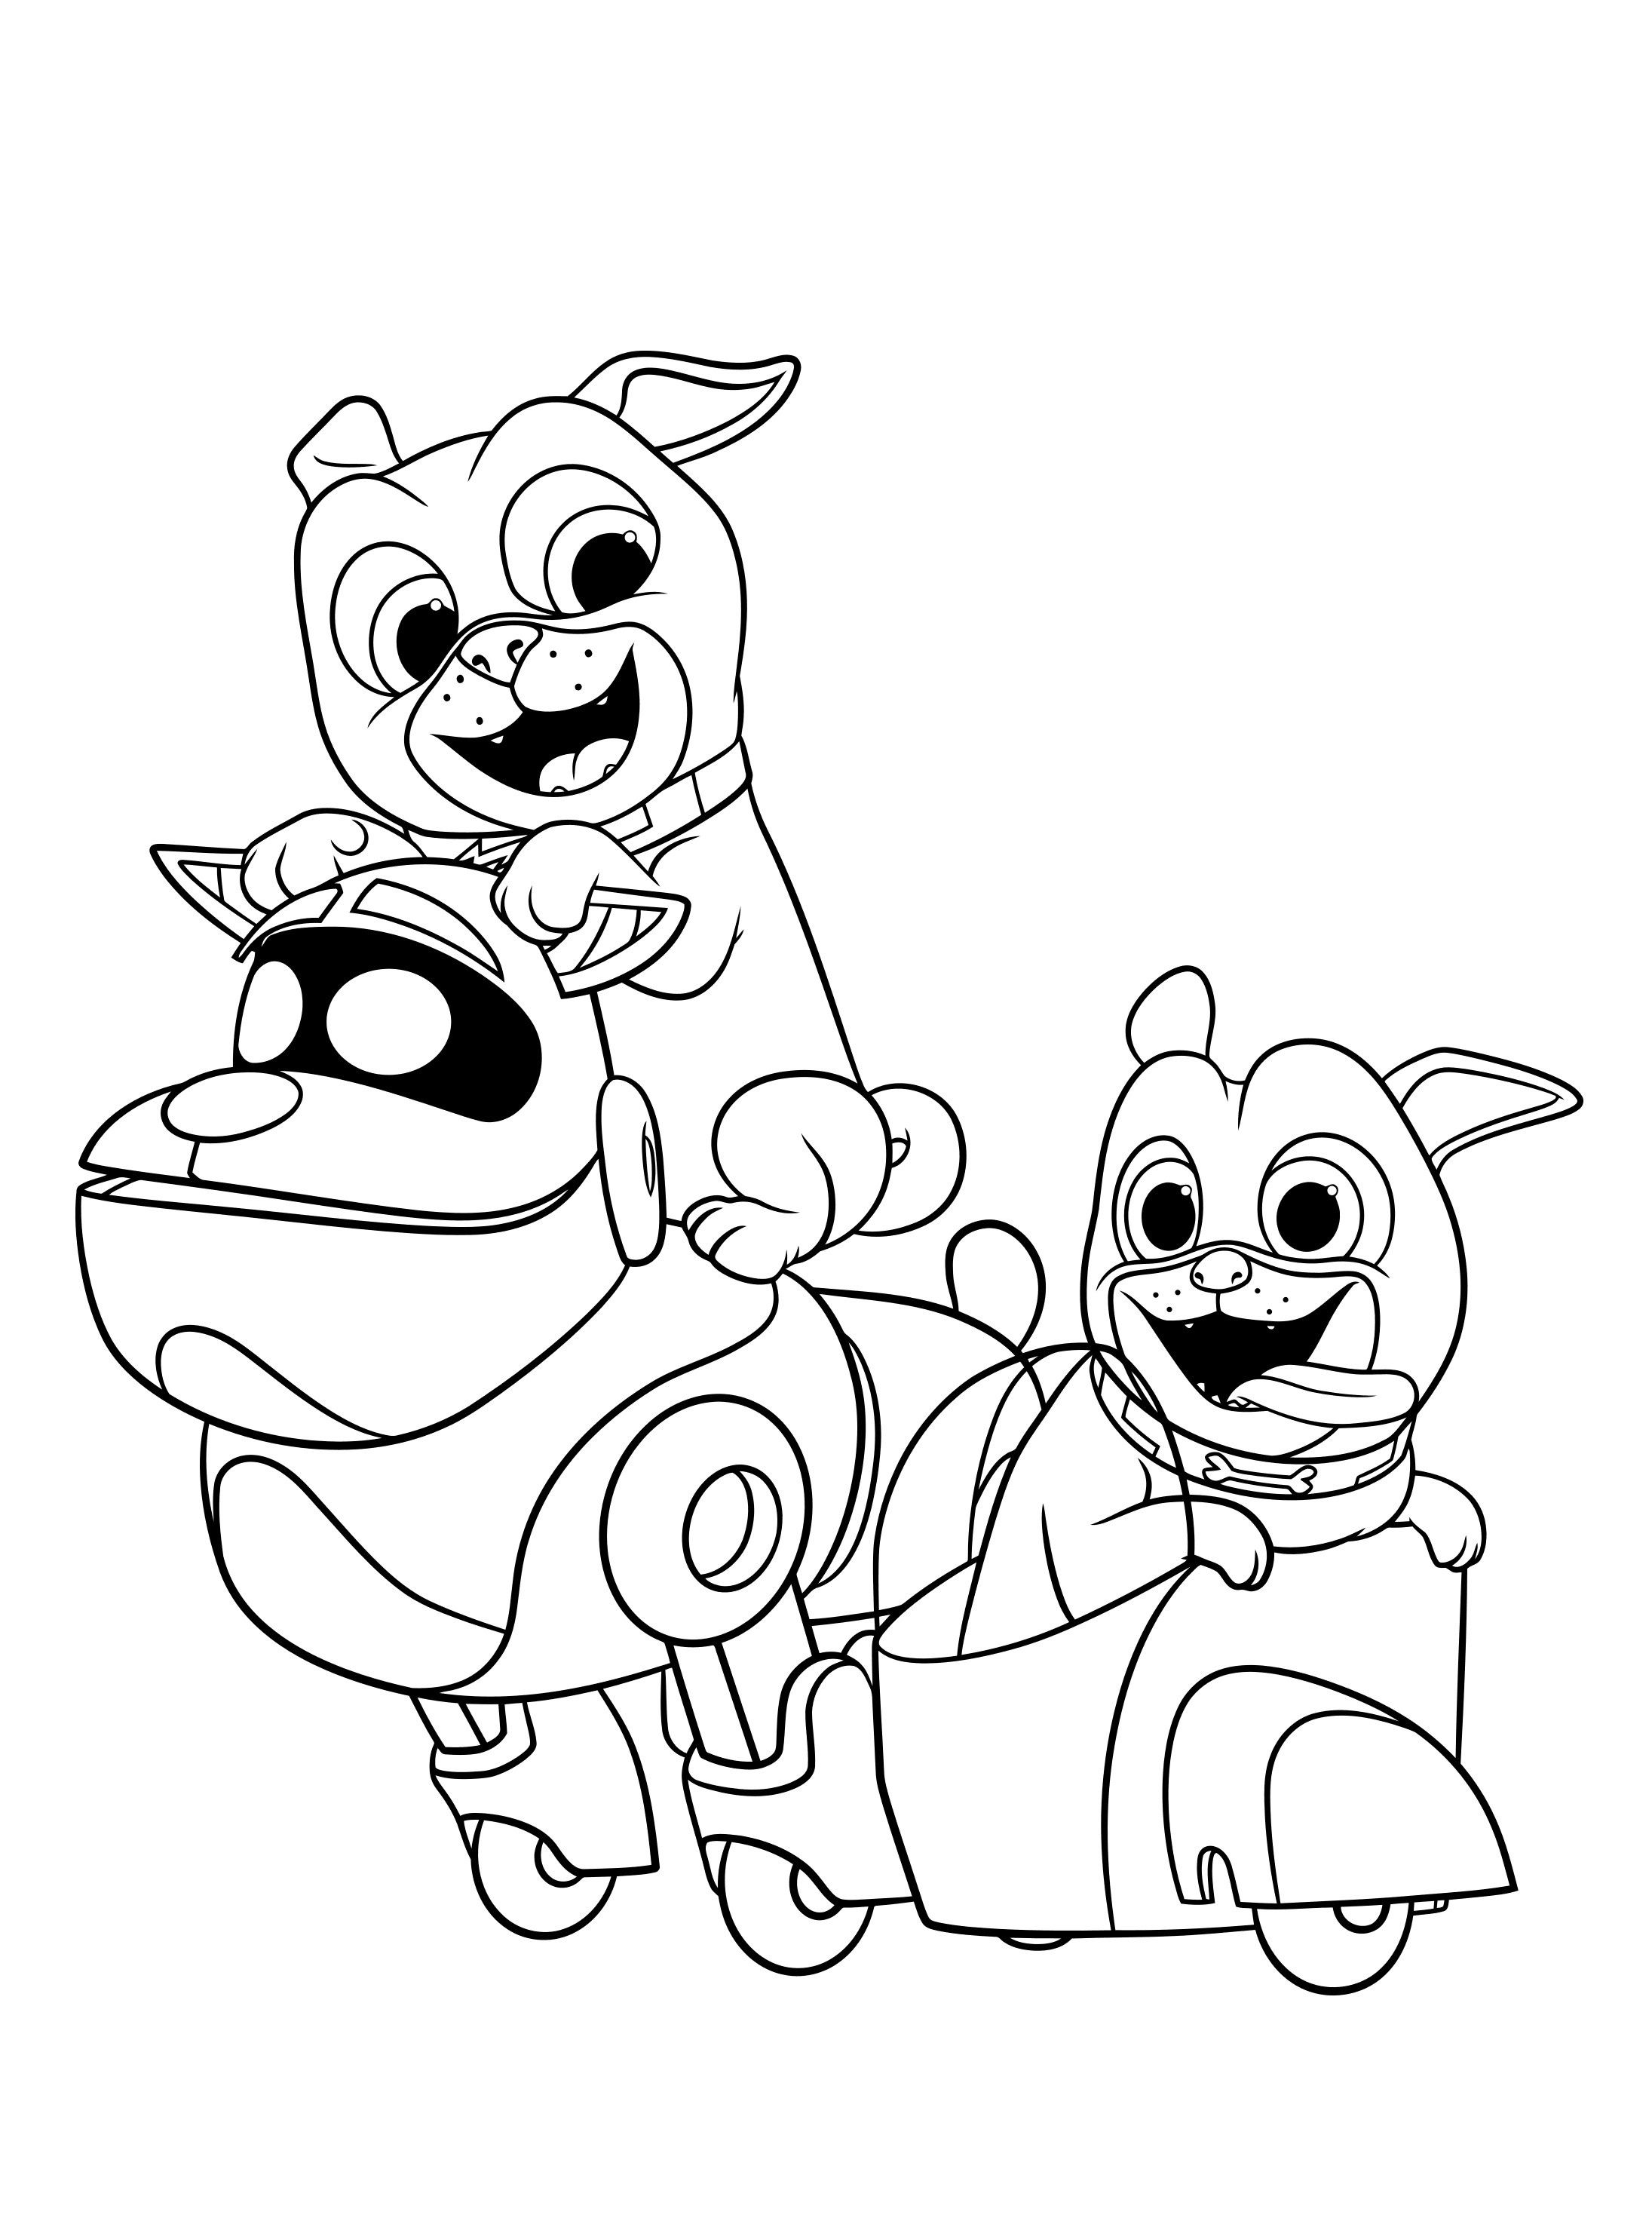 Puppy Dog Pals And Arf Colouring Image